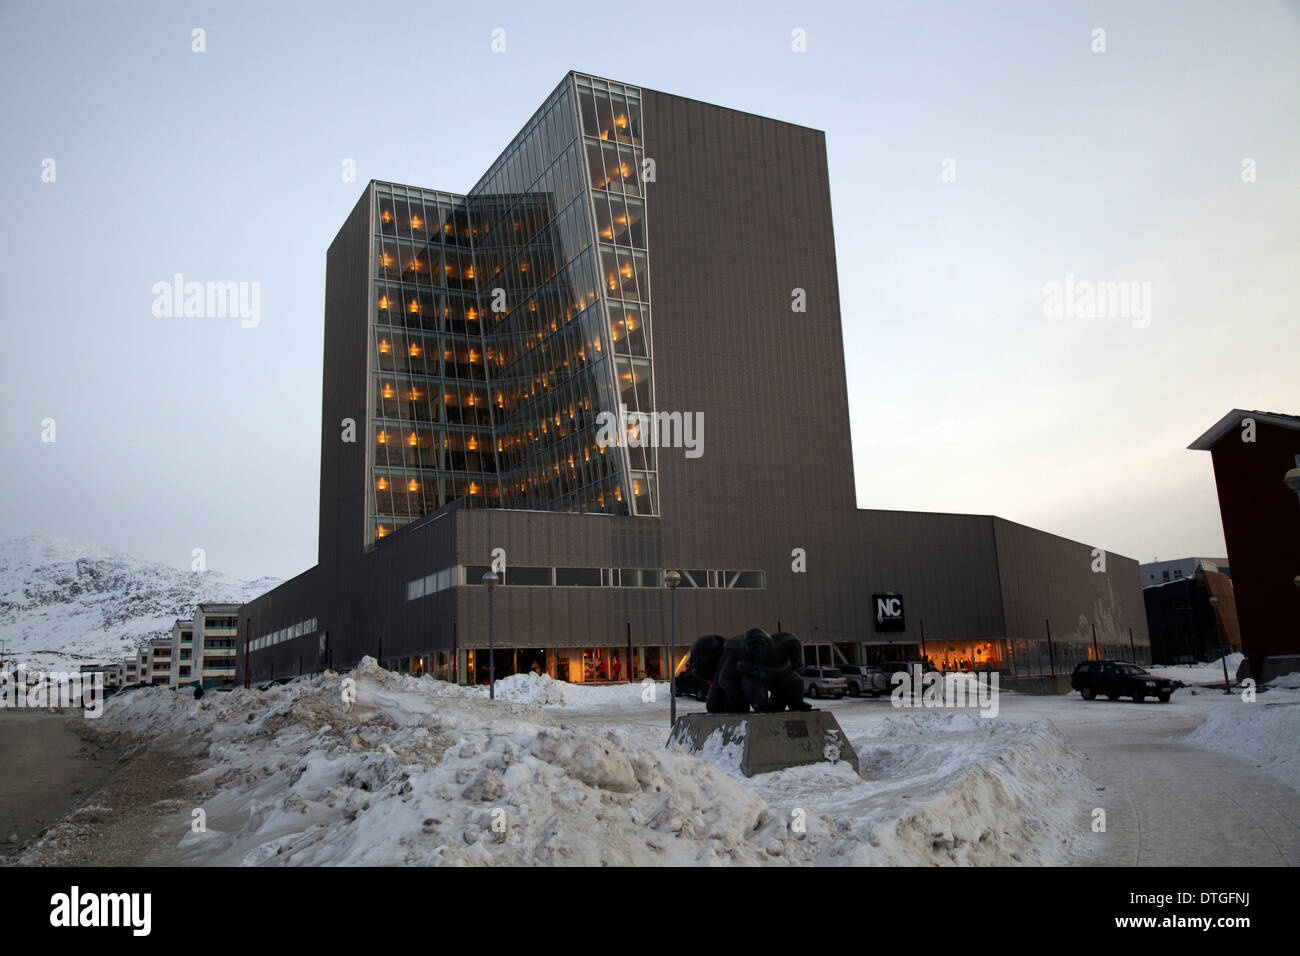 The tallest building in Nuuk. Greenland. The economic and politic center in Greenland. - Stock Image